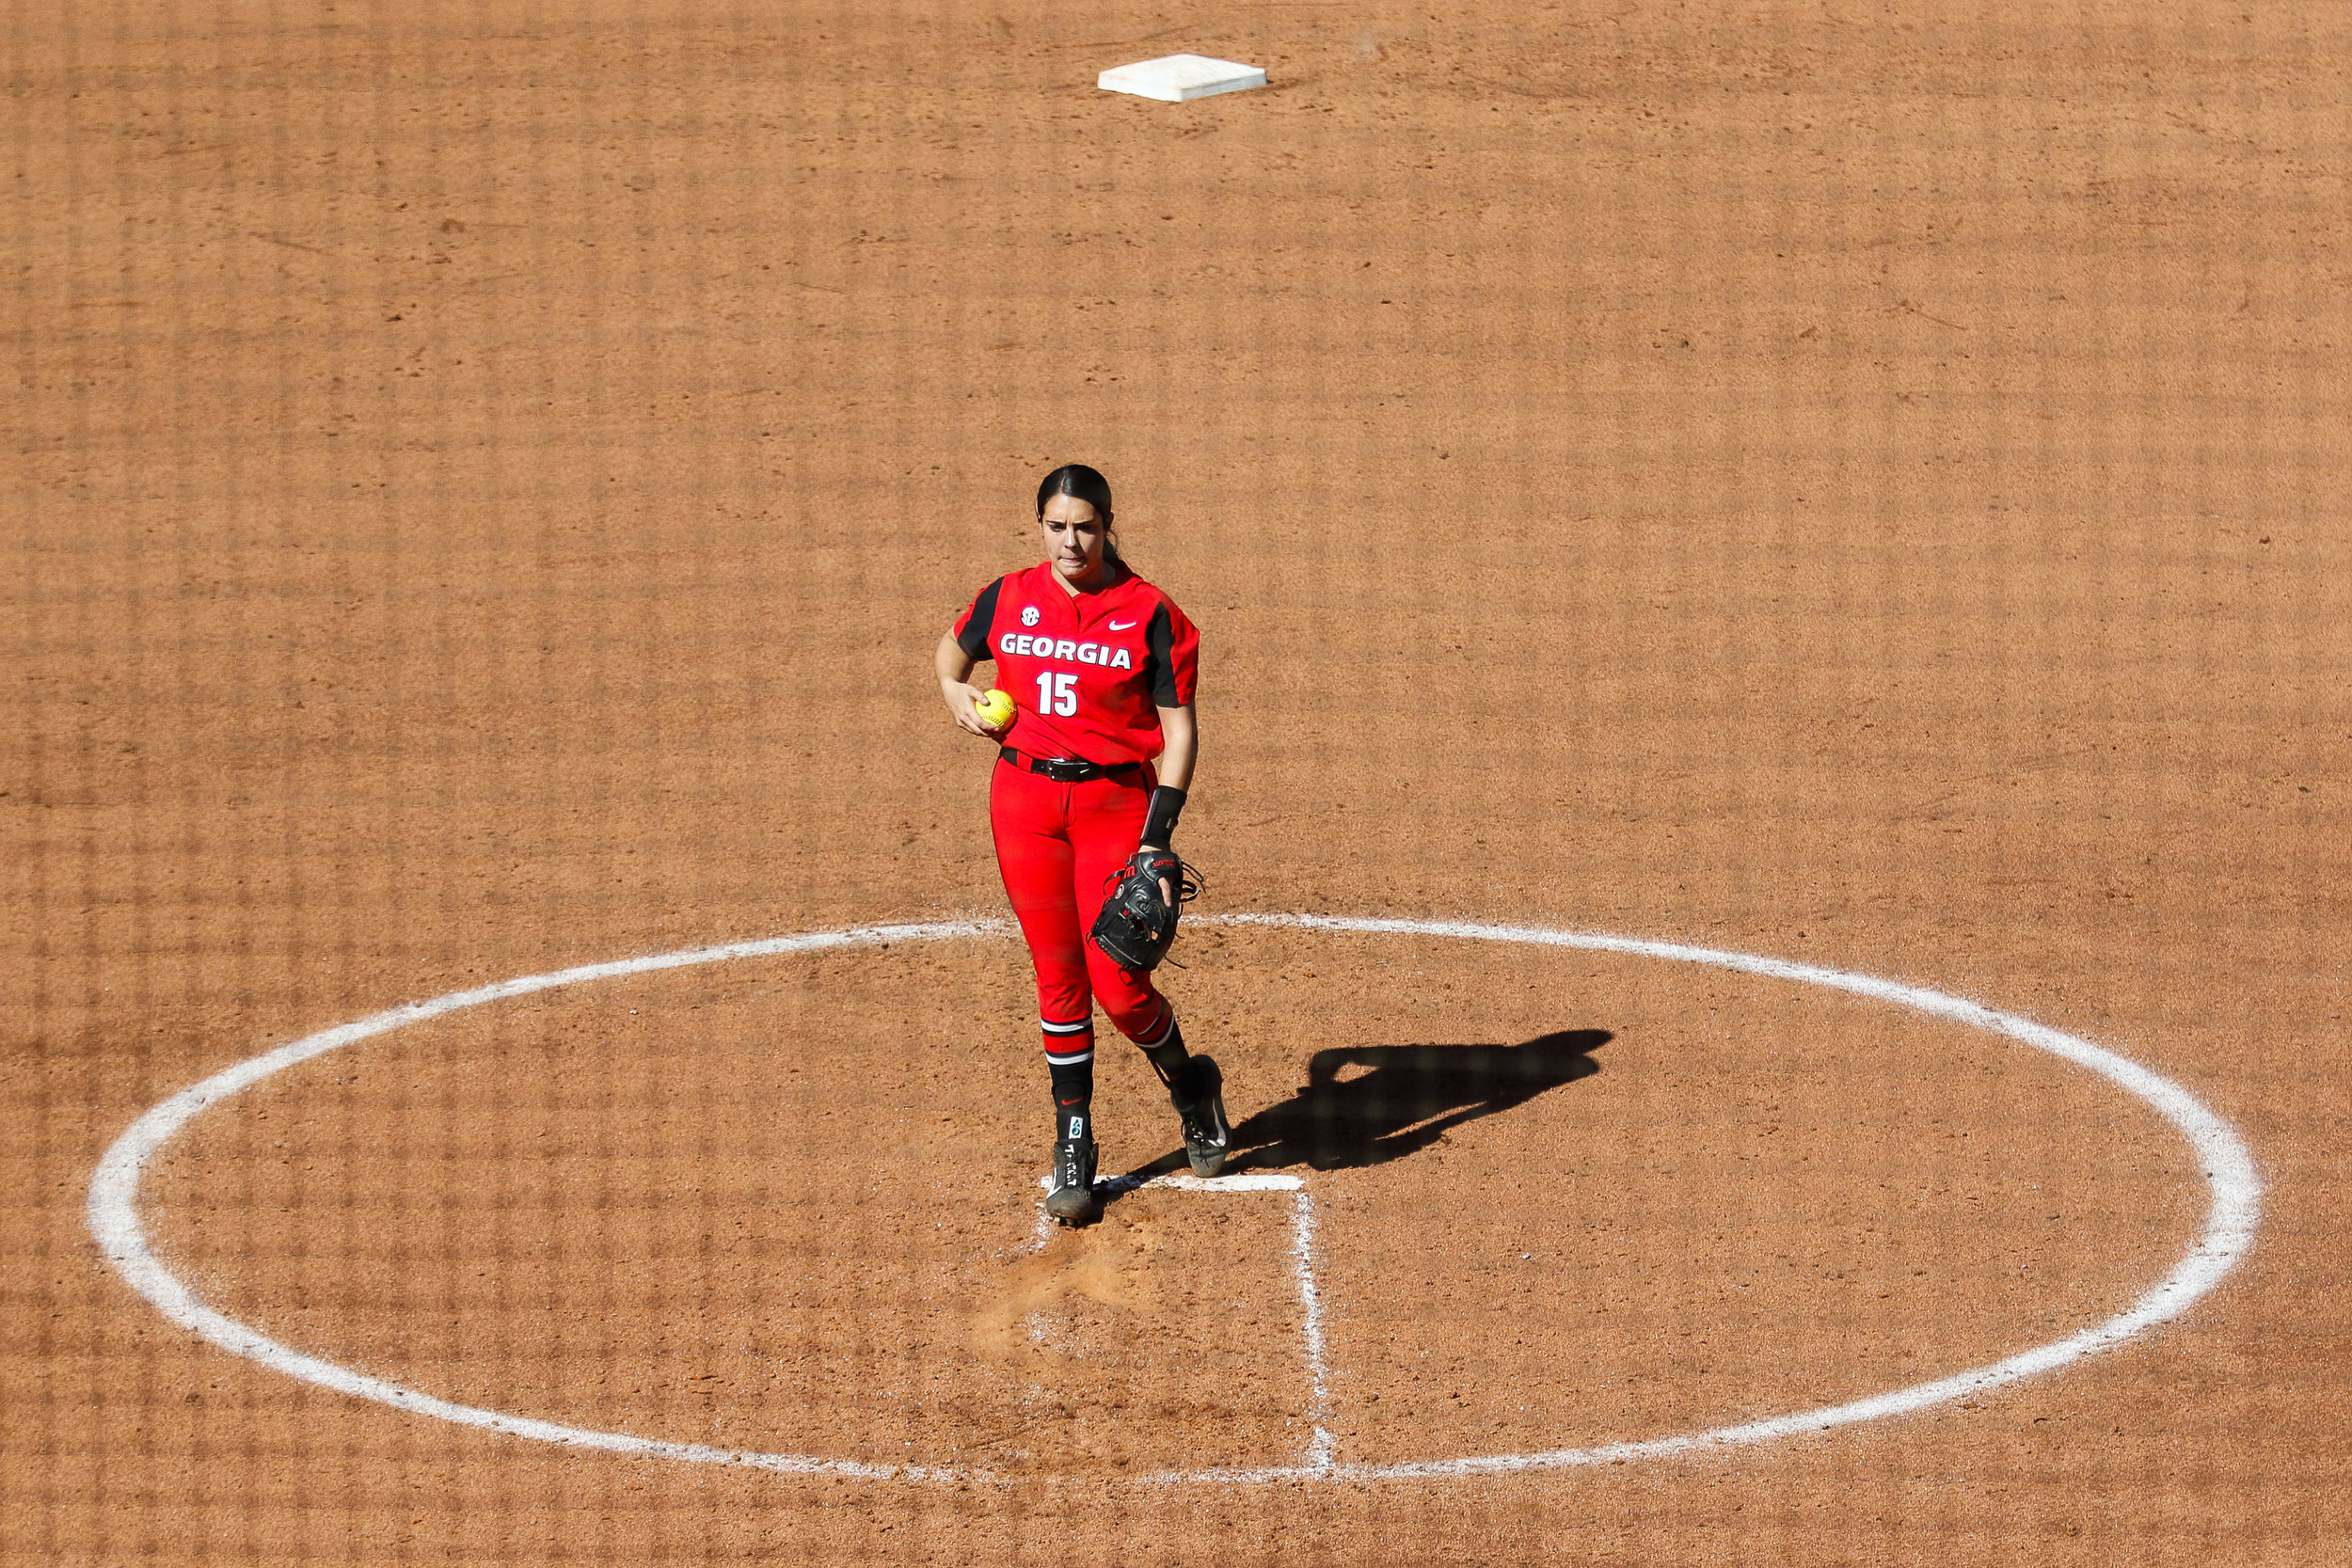 Georgia pitcher Alley Cutting (15) turns the ball over in her hand between pitches of a softball game against Belmont University in Athens, Ga., on Sunday, Feb. 24, 2019.